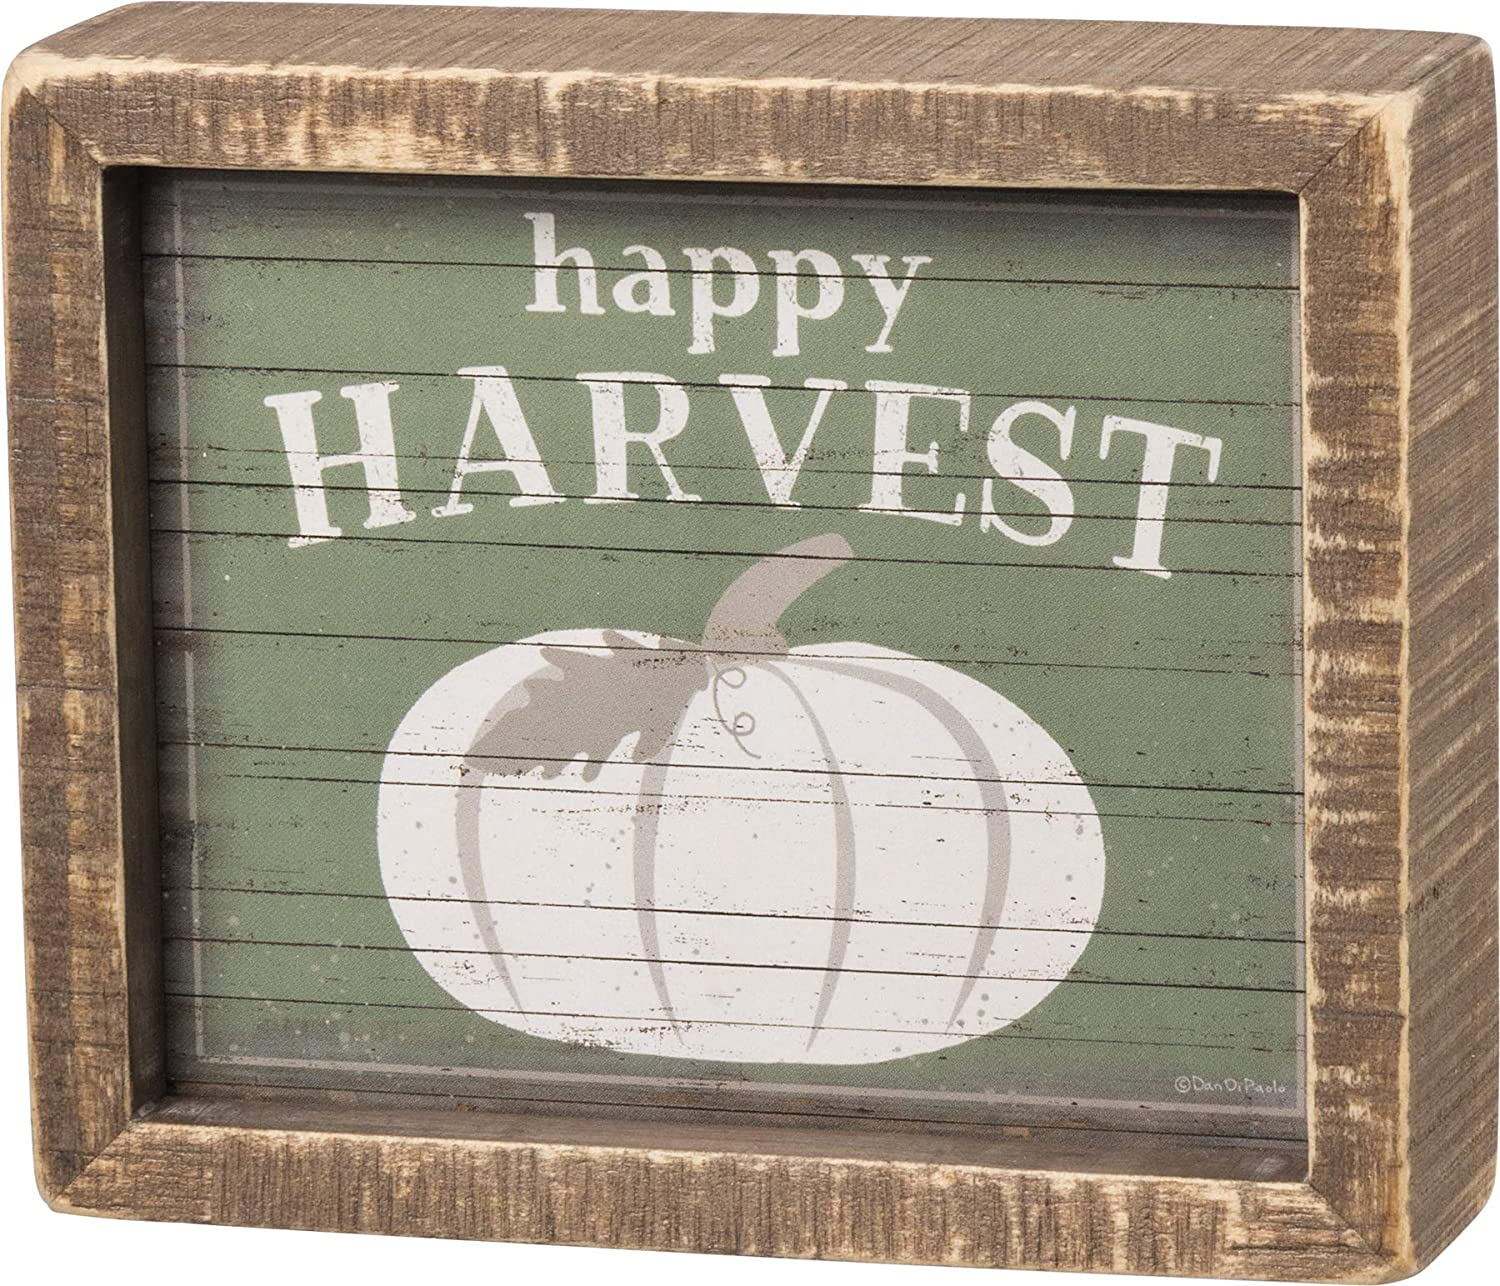 Primitives by Kathy Inset Box Sign, 6 x 5-Inch, Green - Happy Harvest